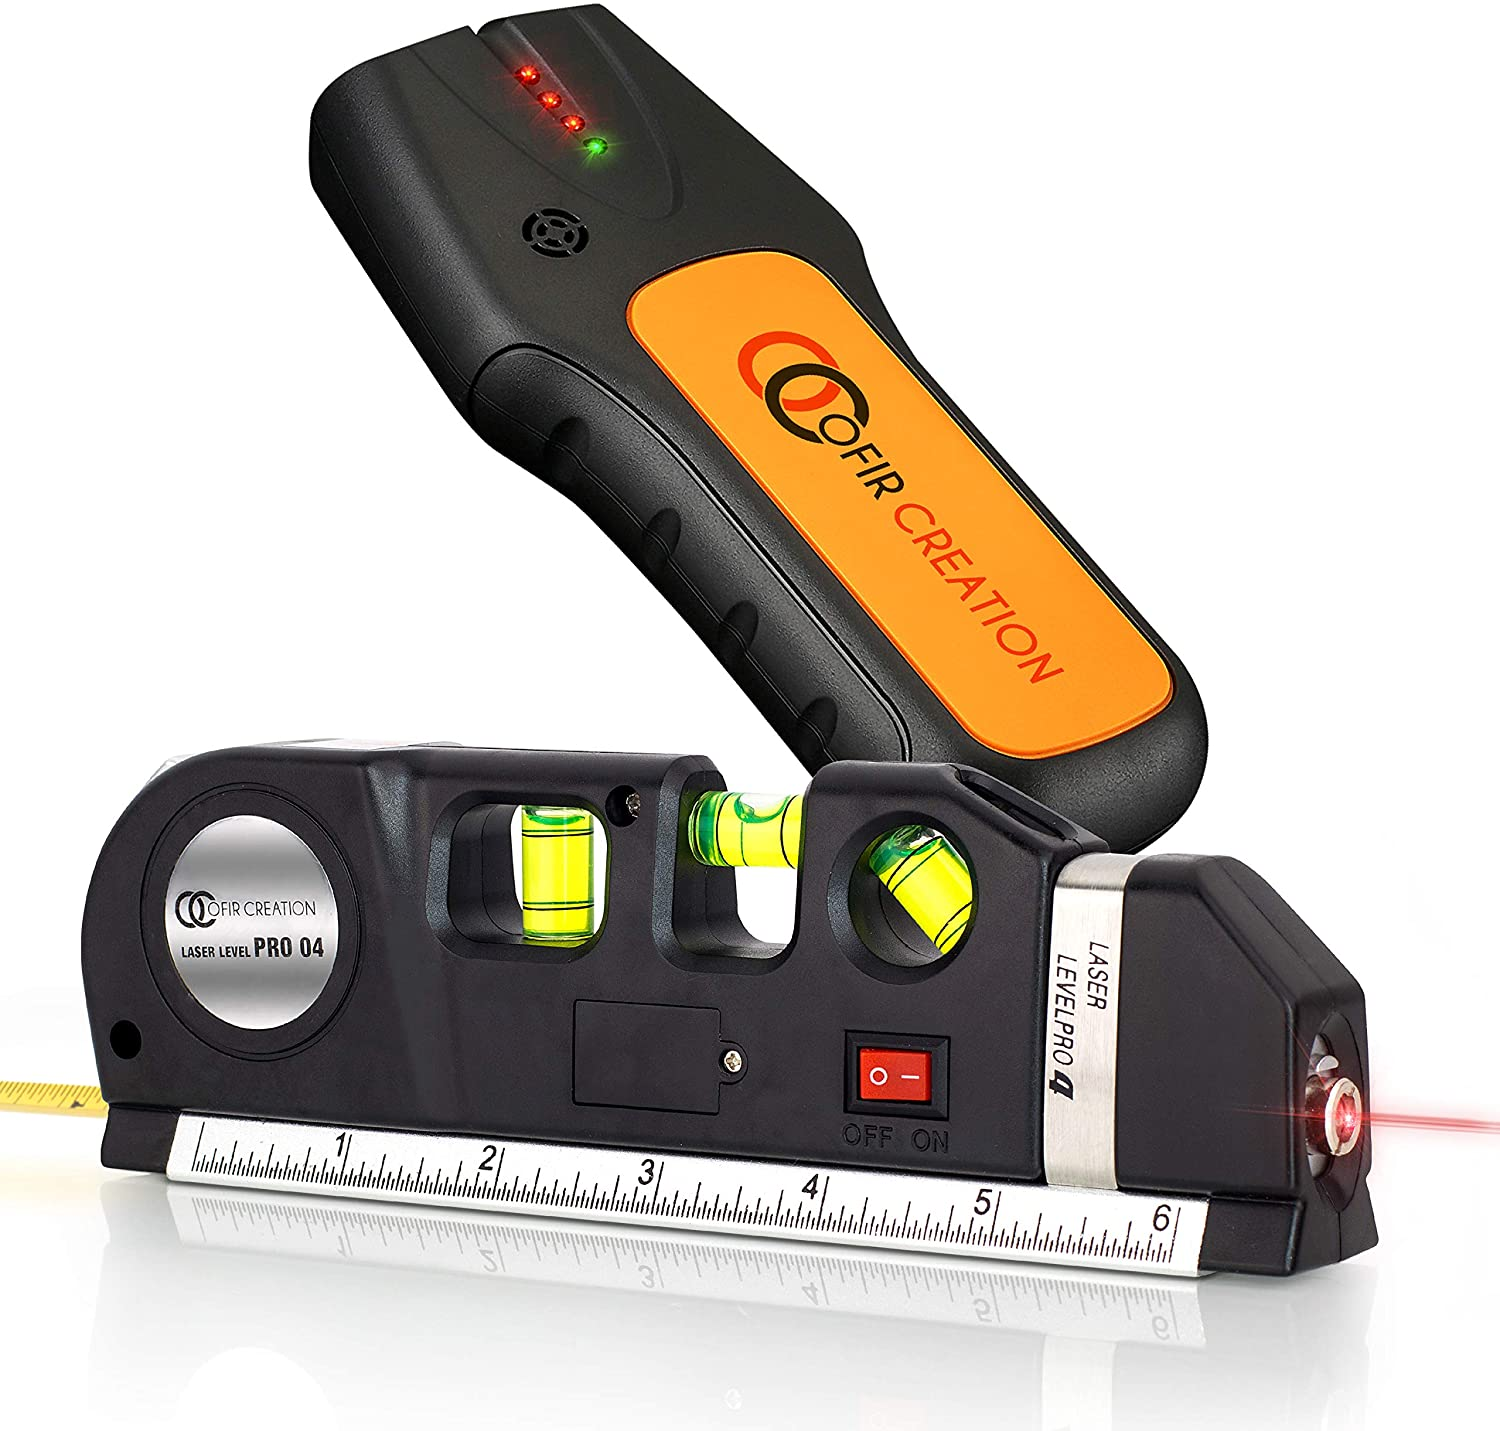 New Advanced Standard Laser Measurement Level Pro 3 with Bullt in Tape Mesaure